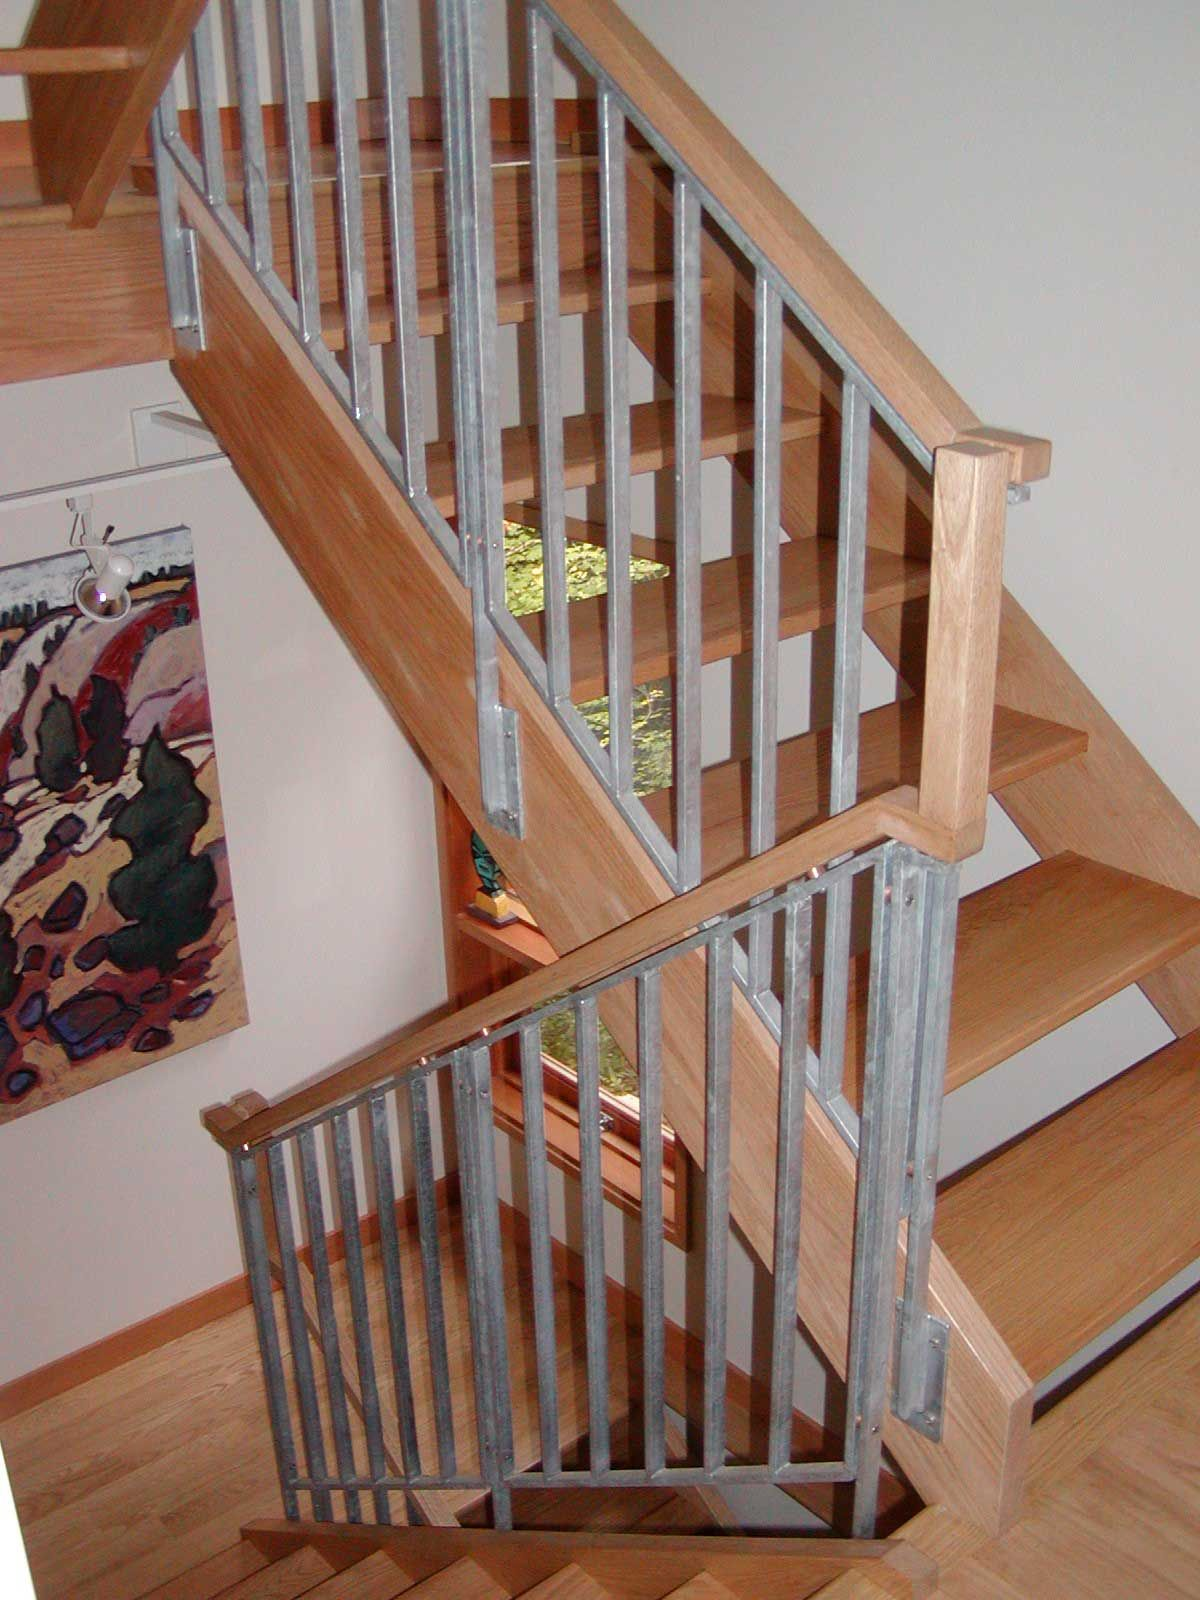 Stair Railing Wood Stair Railings Interior Wood Stair